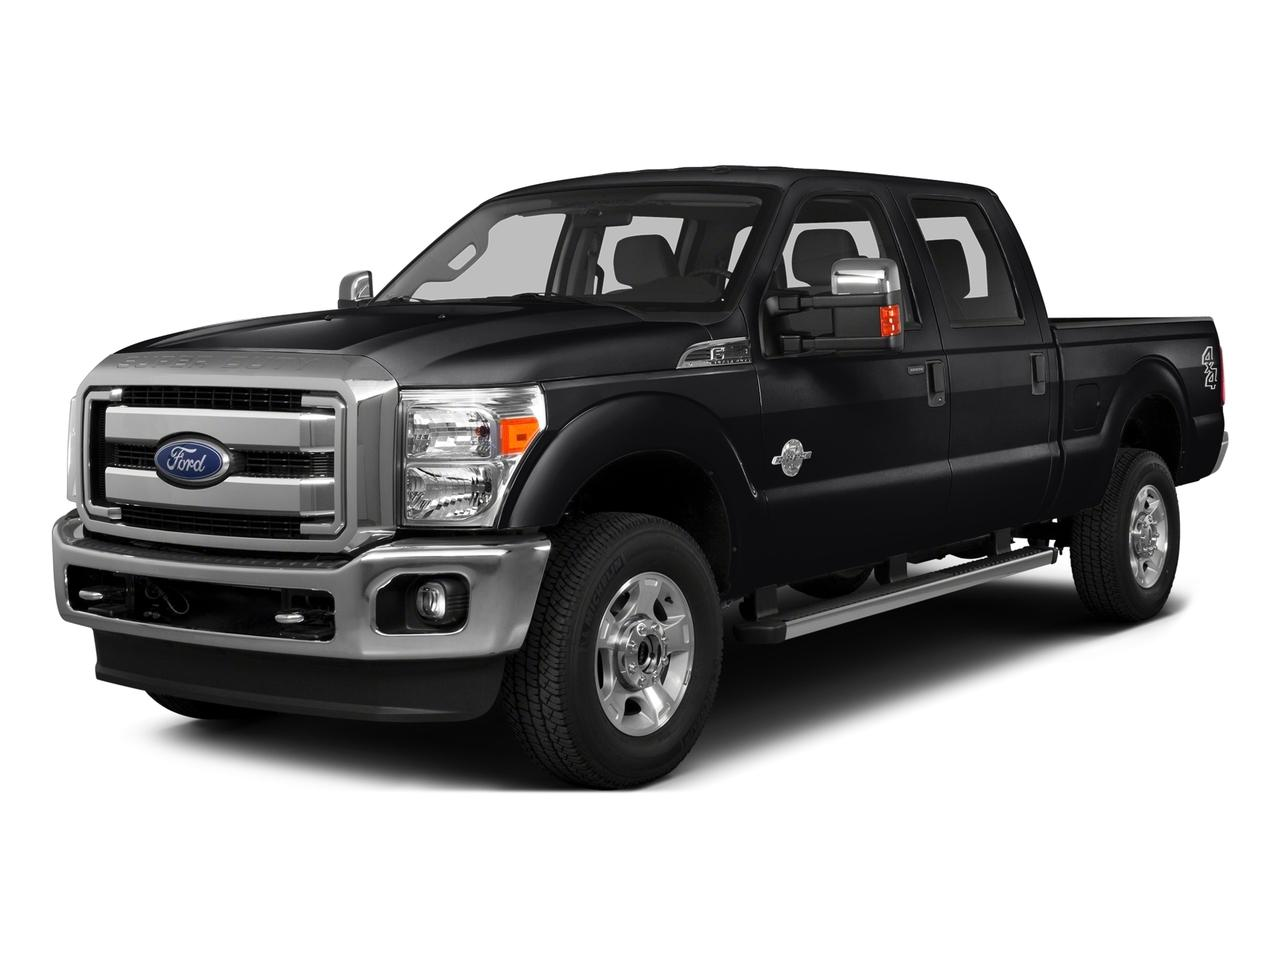 2016 Ford Super Duty F-250 SRW Vehicle Photo in Pocomoke City, MD 21851